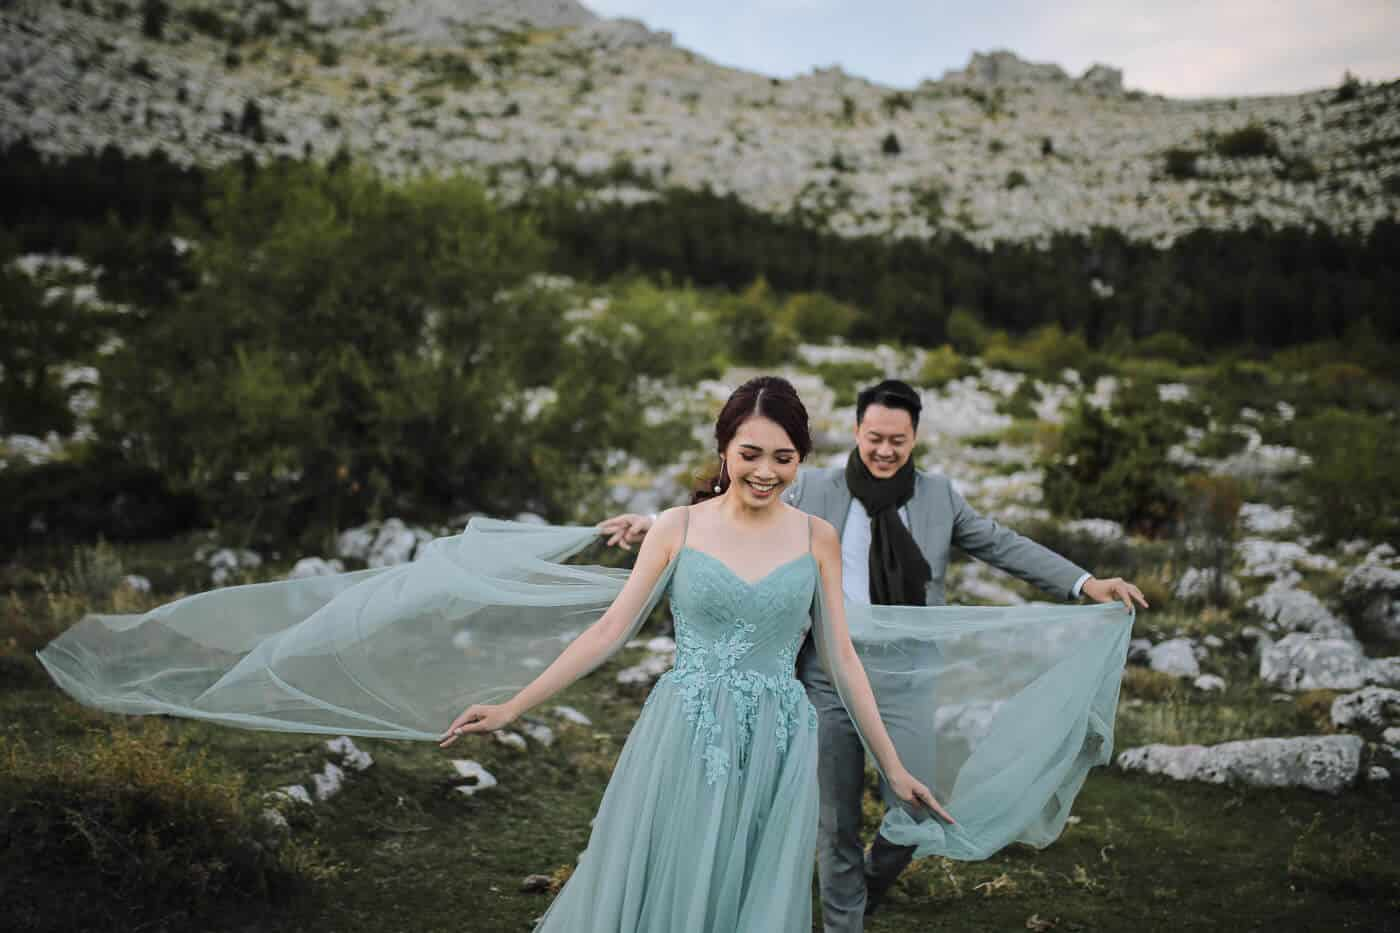 asian couple on their croatia honeymoon during photosession in green gown